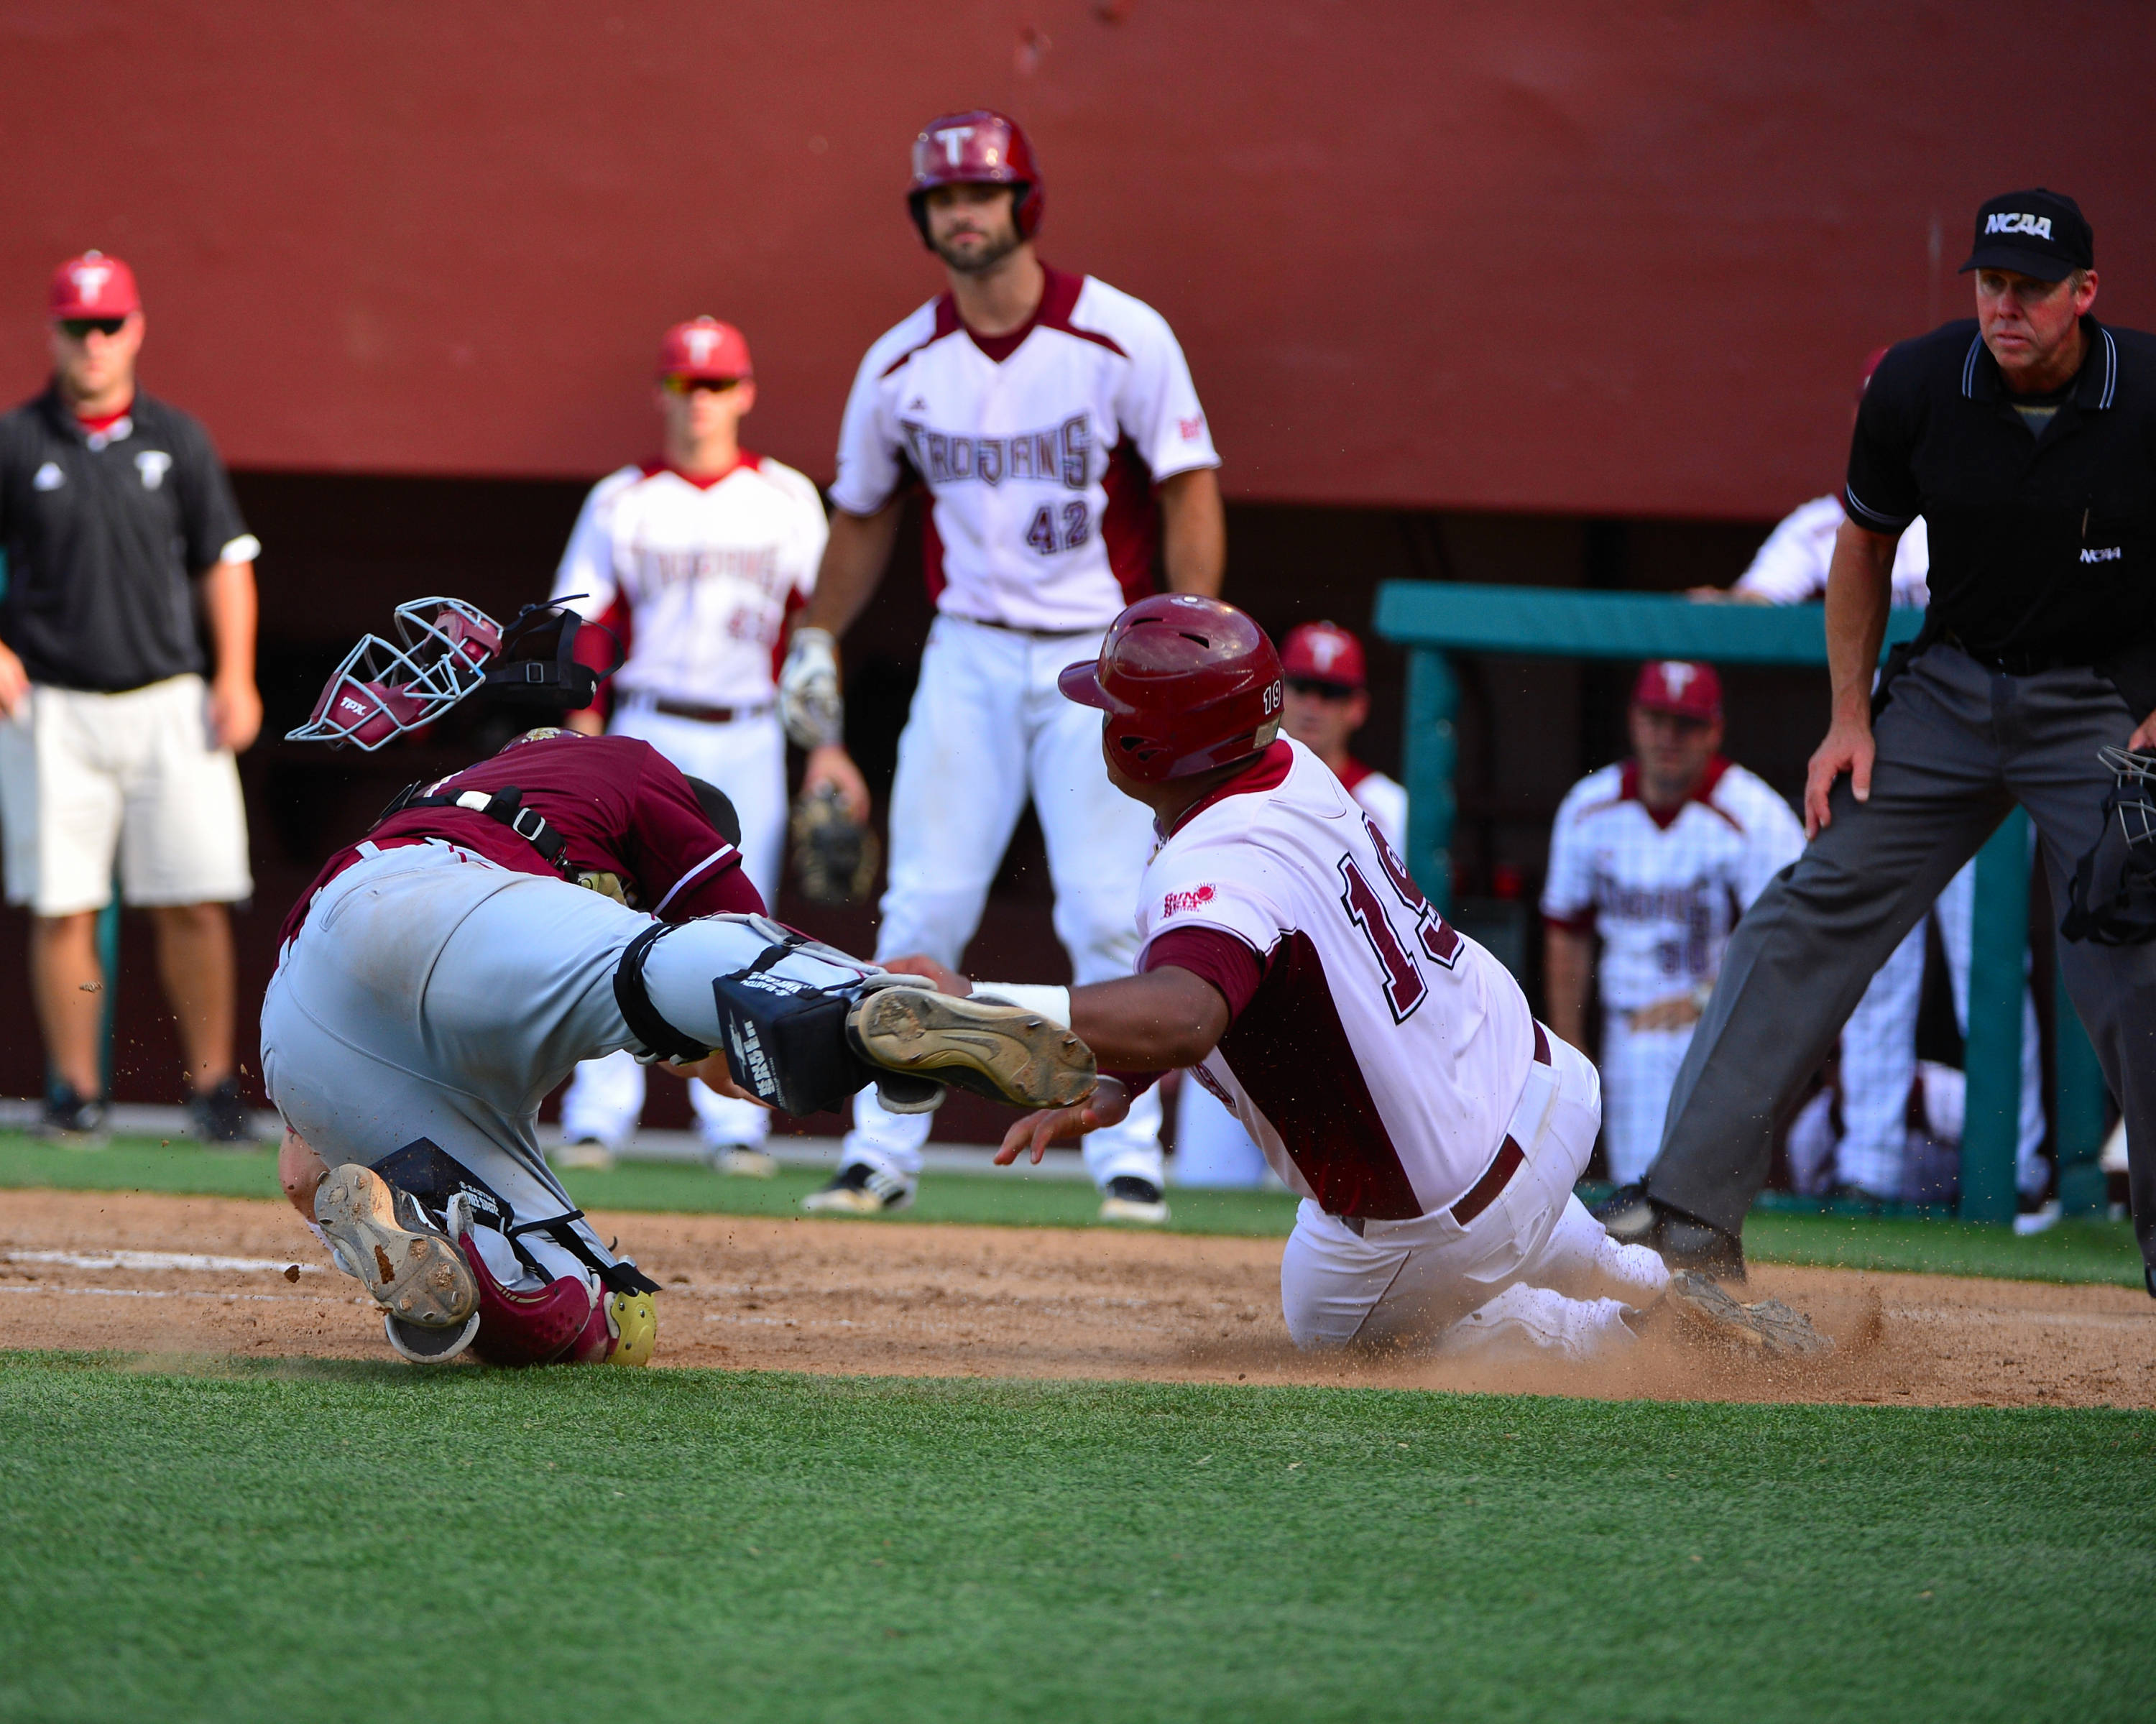 Stephen McGee makes the tag at home in the fourth inning.